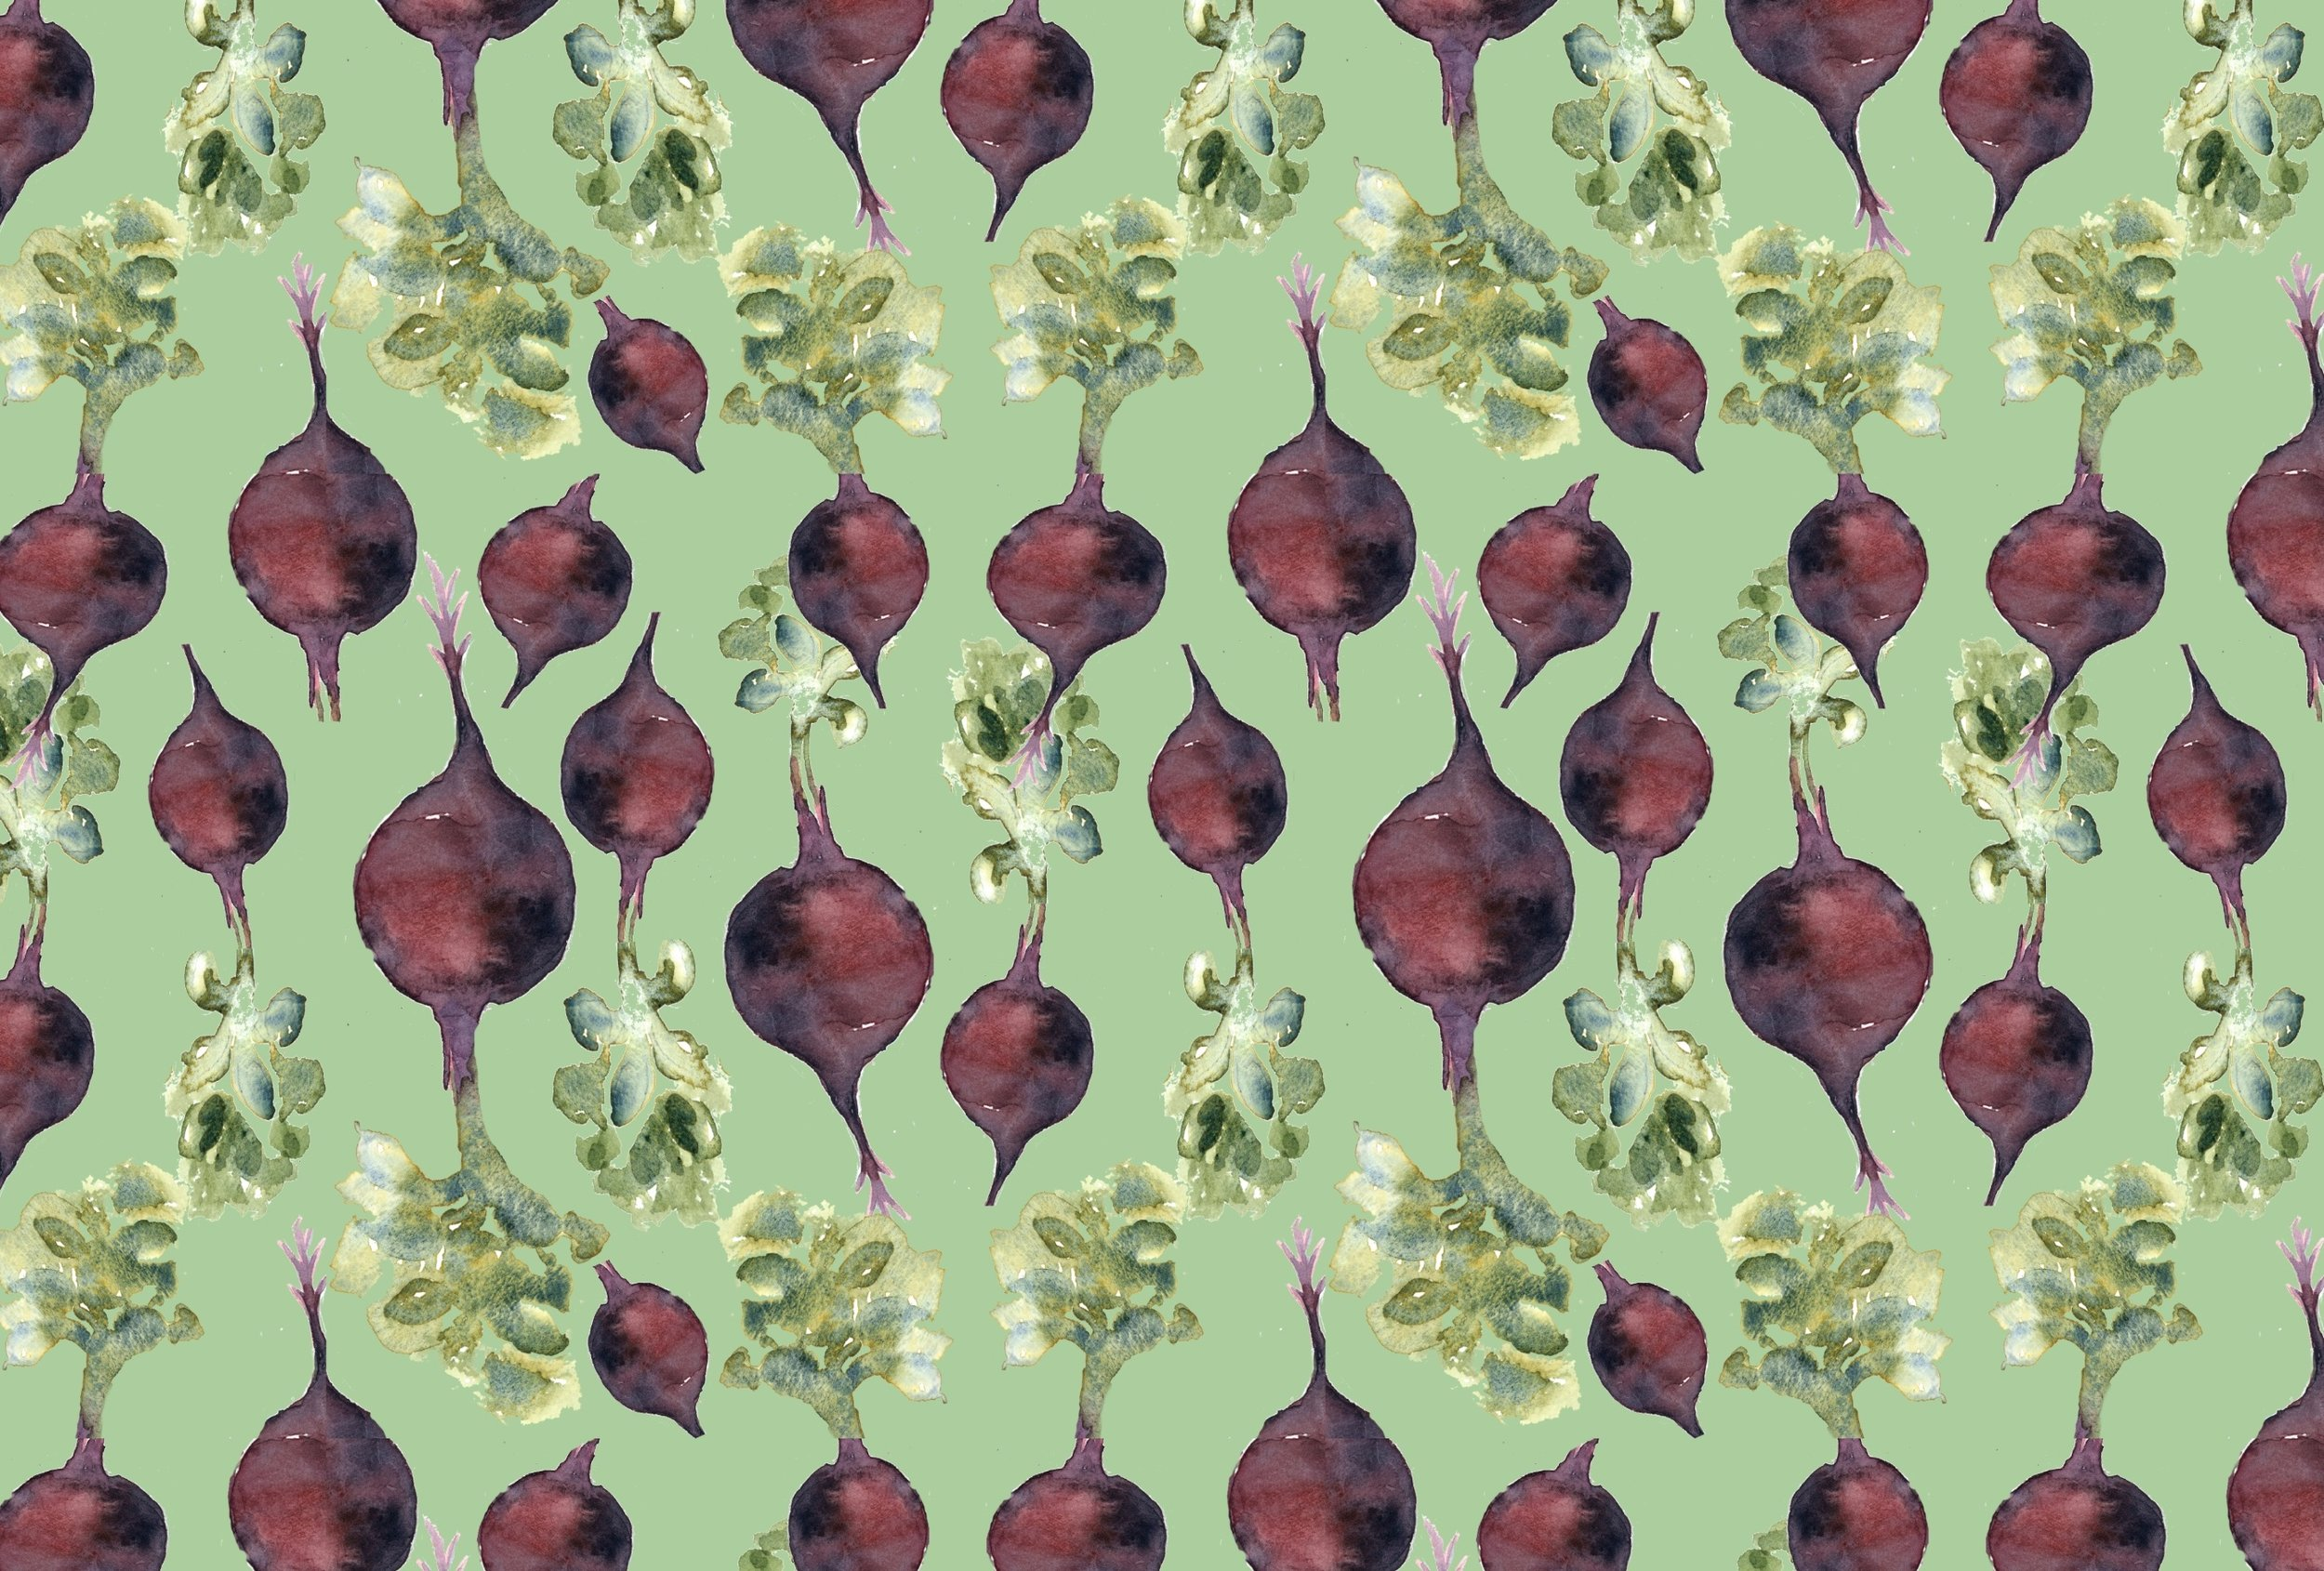 Beetroot design m grn bkgd f facebook.jpg